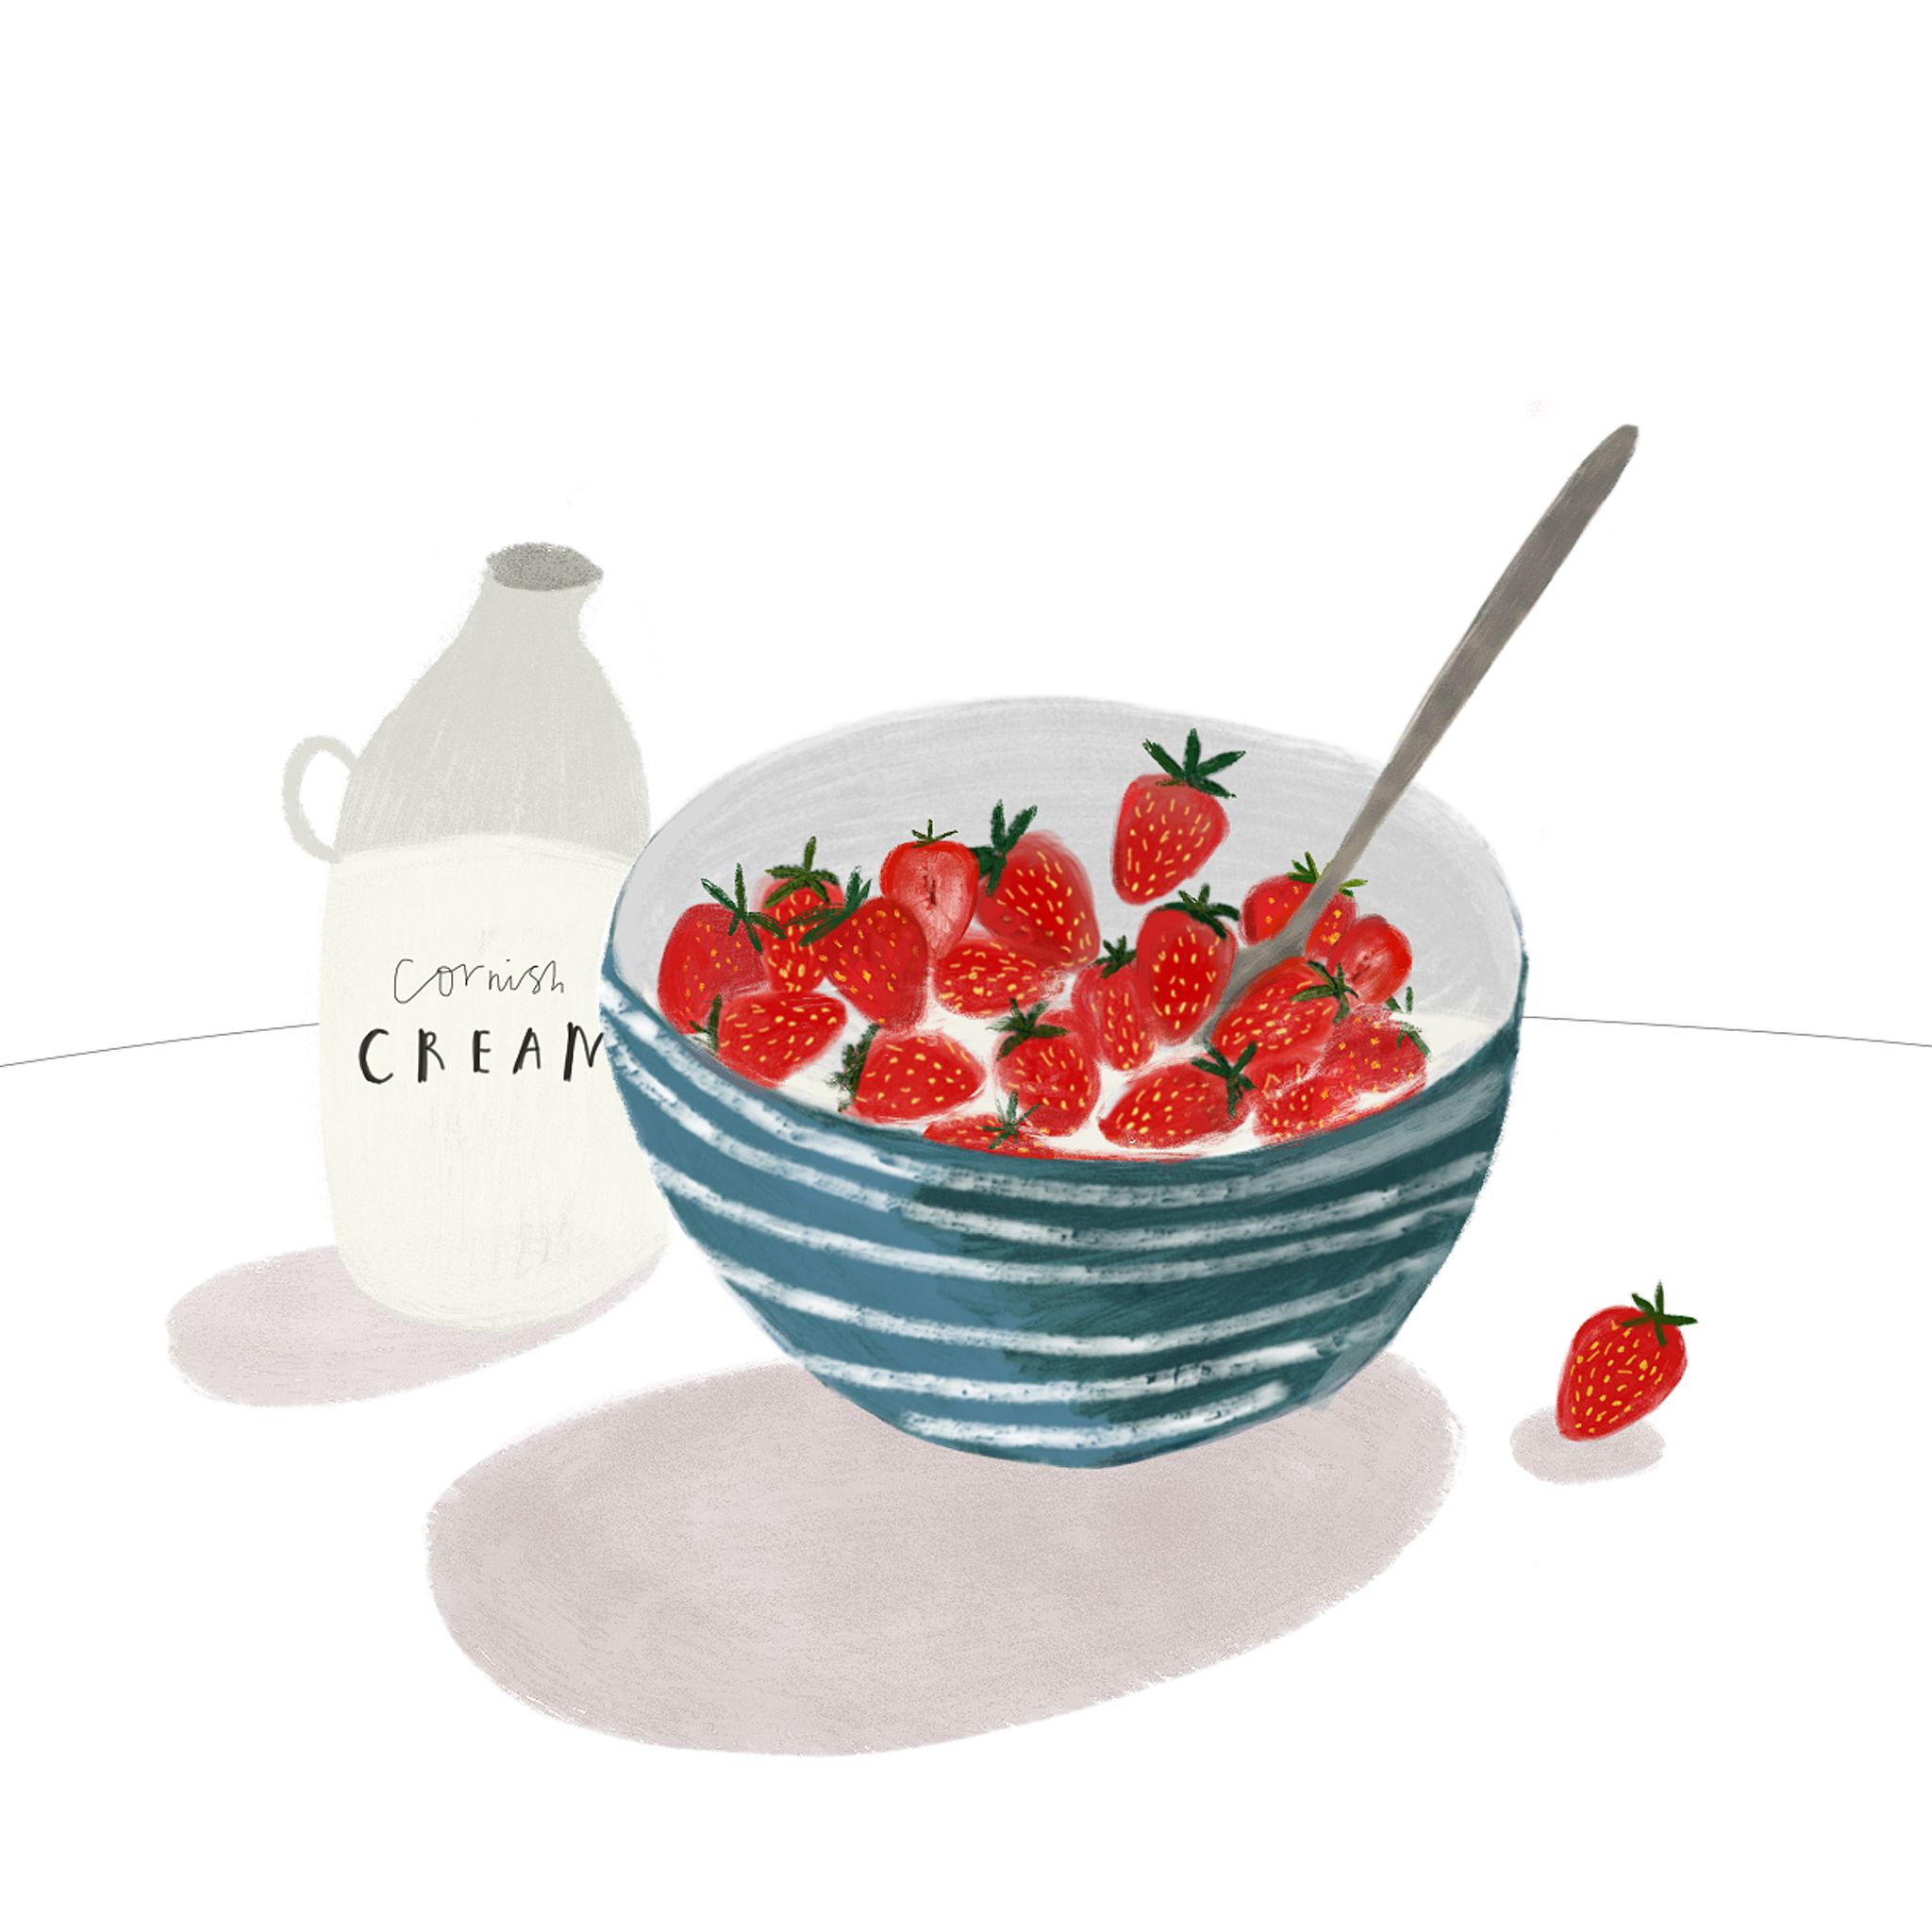 Greetings Cards Gifts Homewares Katy Pillinger Designs Food Illustrations Fruit Illustration Illustration Food